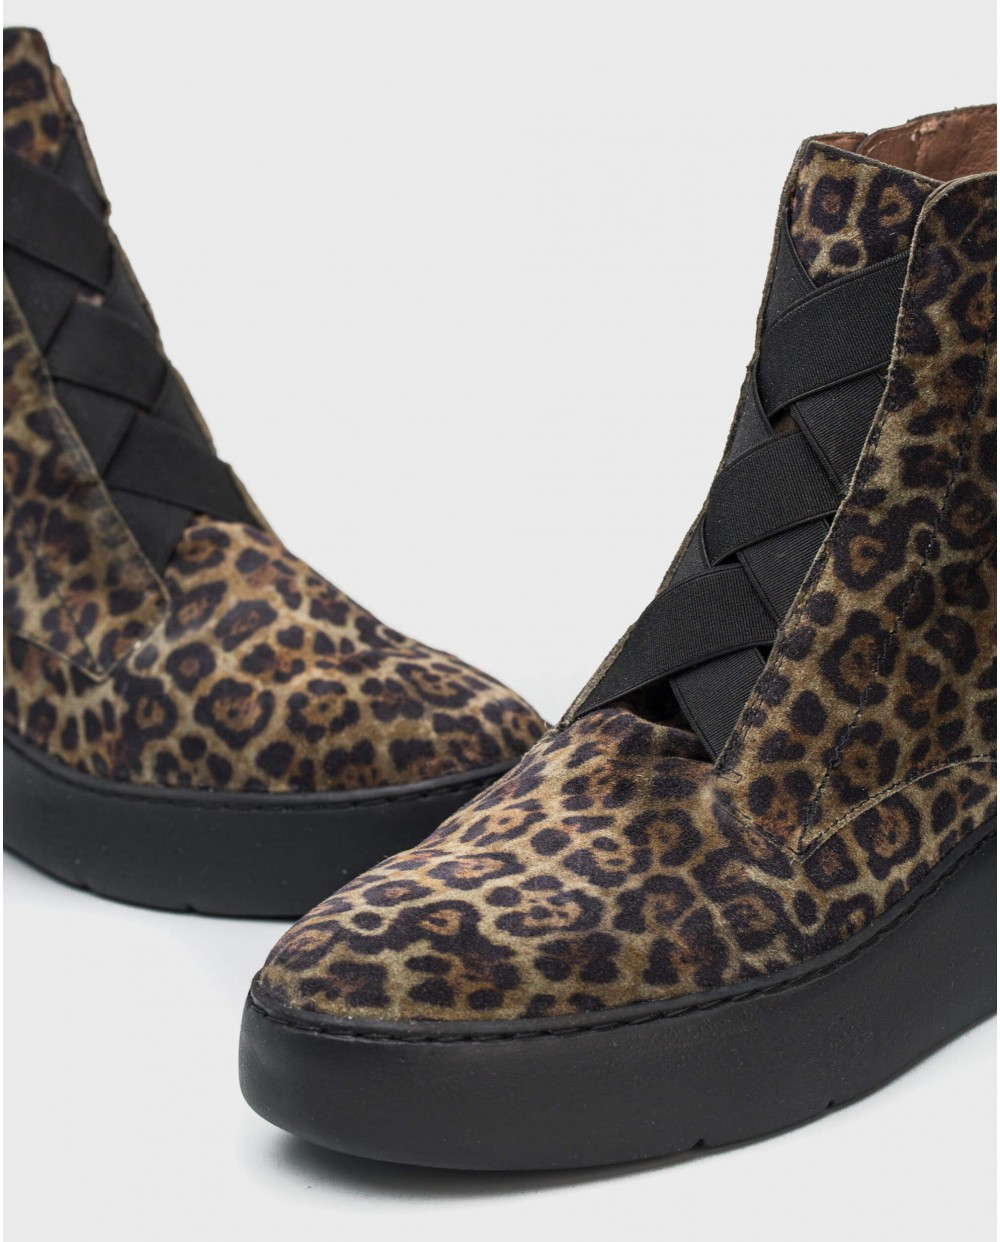 Wonders-Ankle Boots-Animal print ankle boot with elastic closure